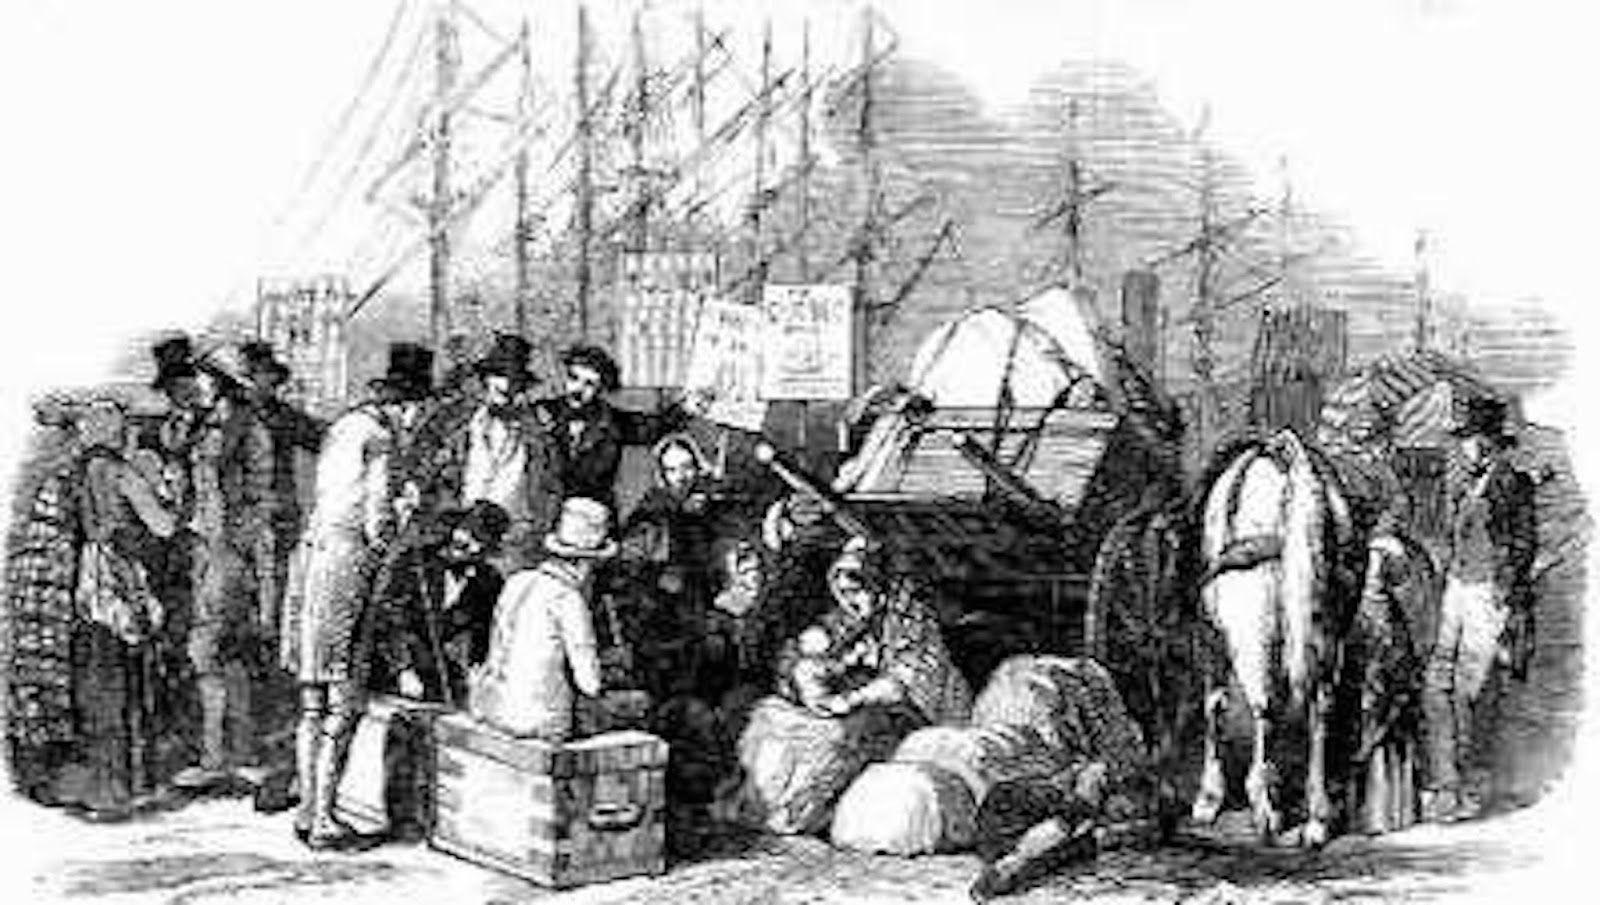 Refugees of Irish Famine to Get a Proper Burial